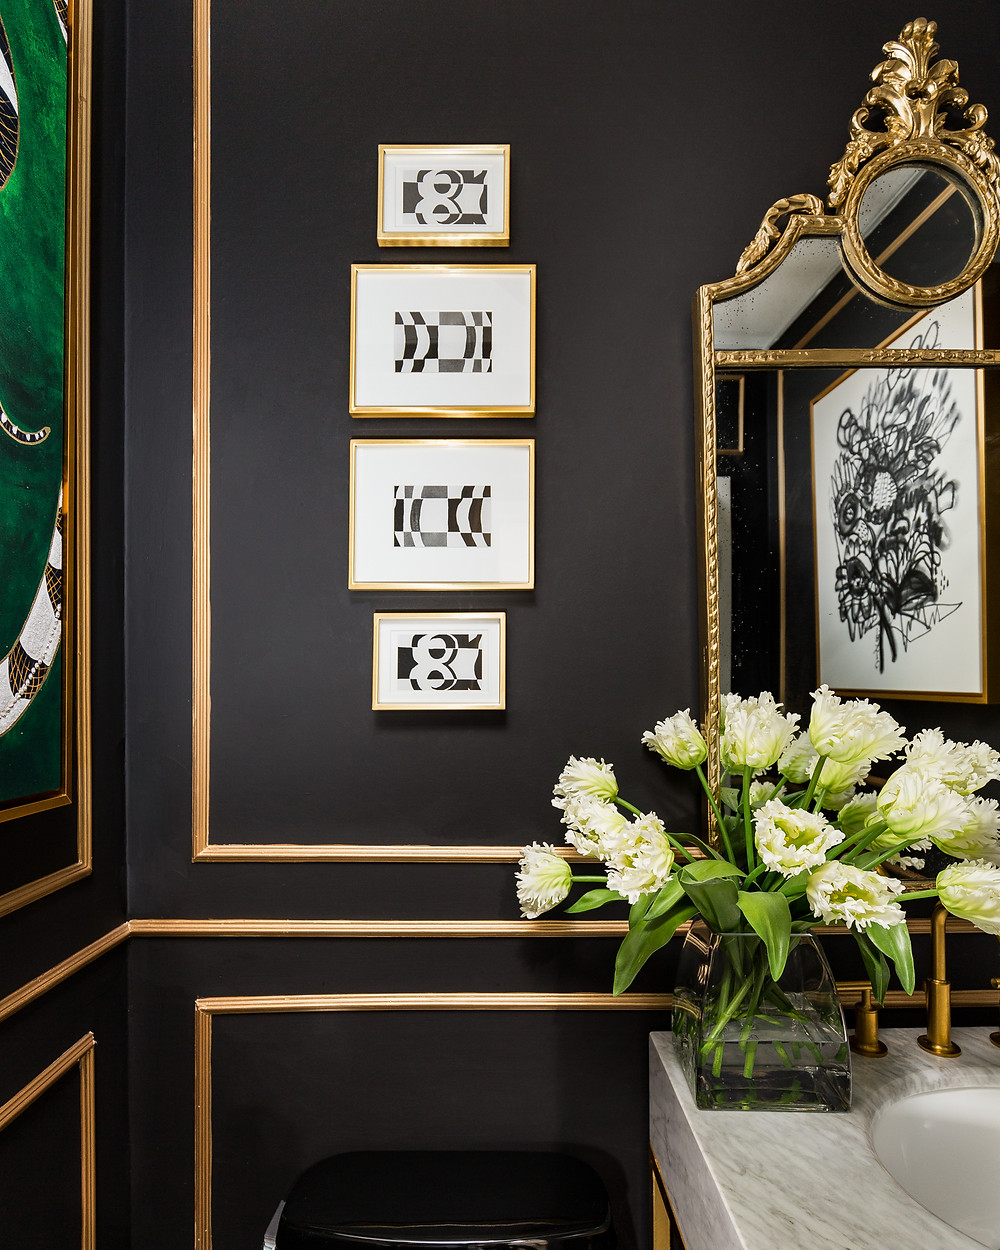 Powder Room With Matte Black Walls And Gold Molding Details